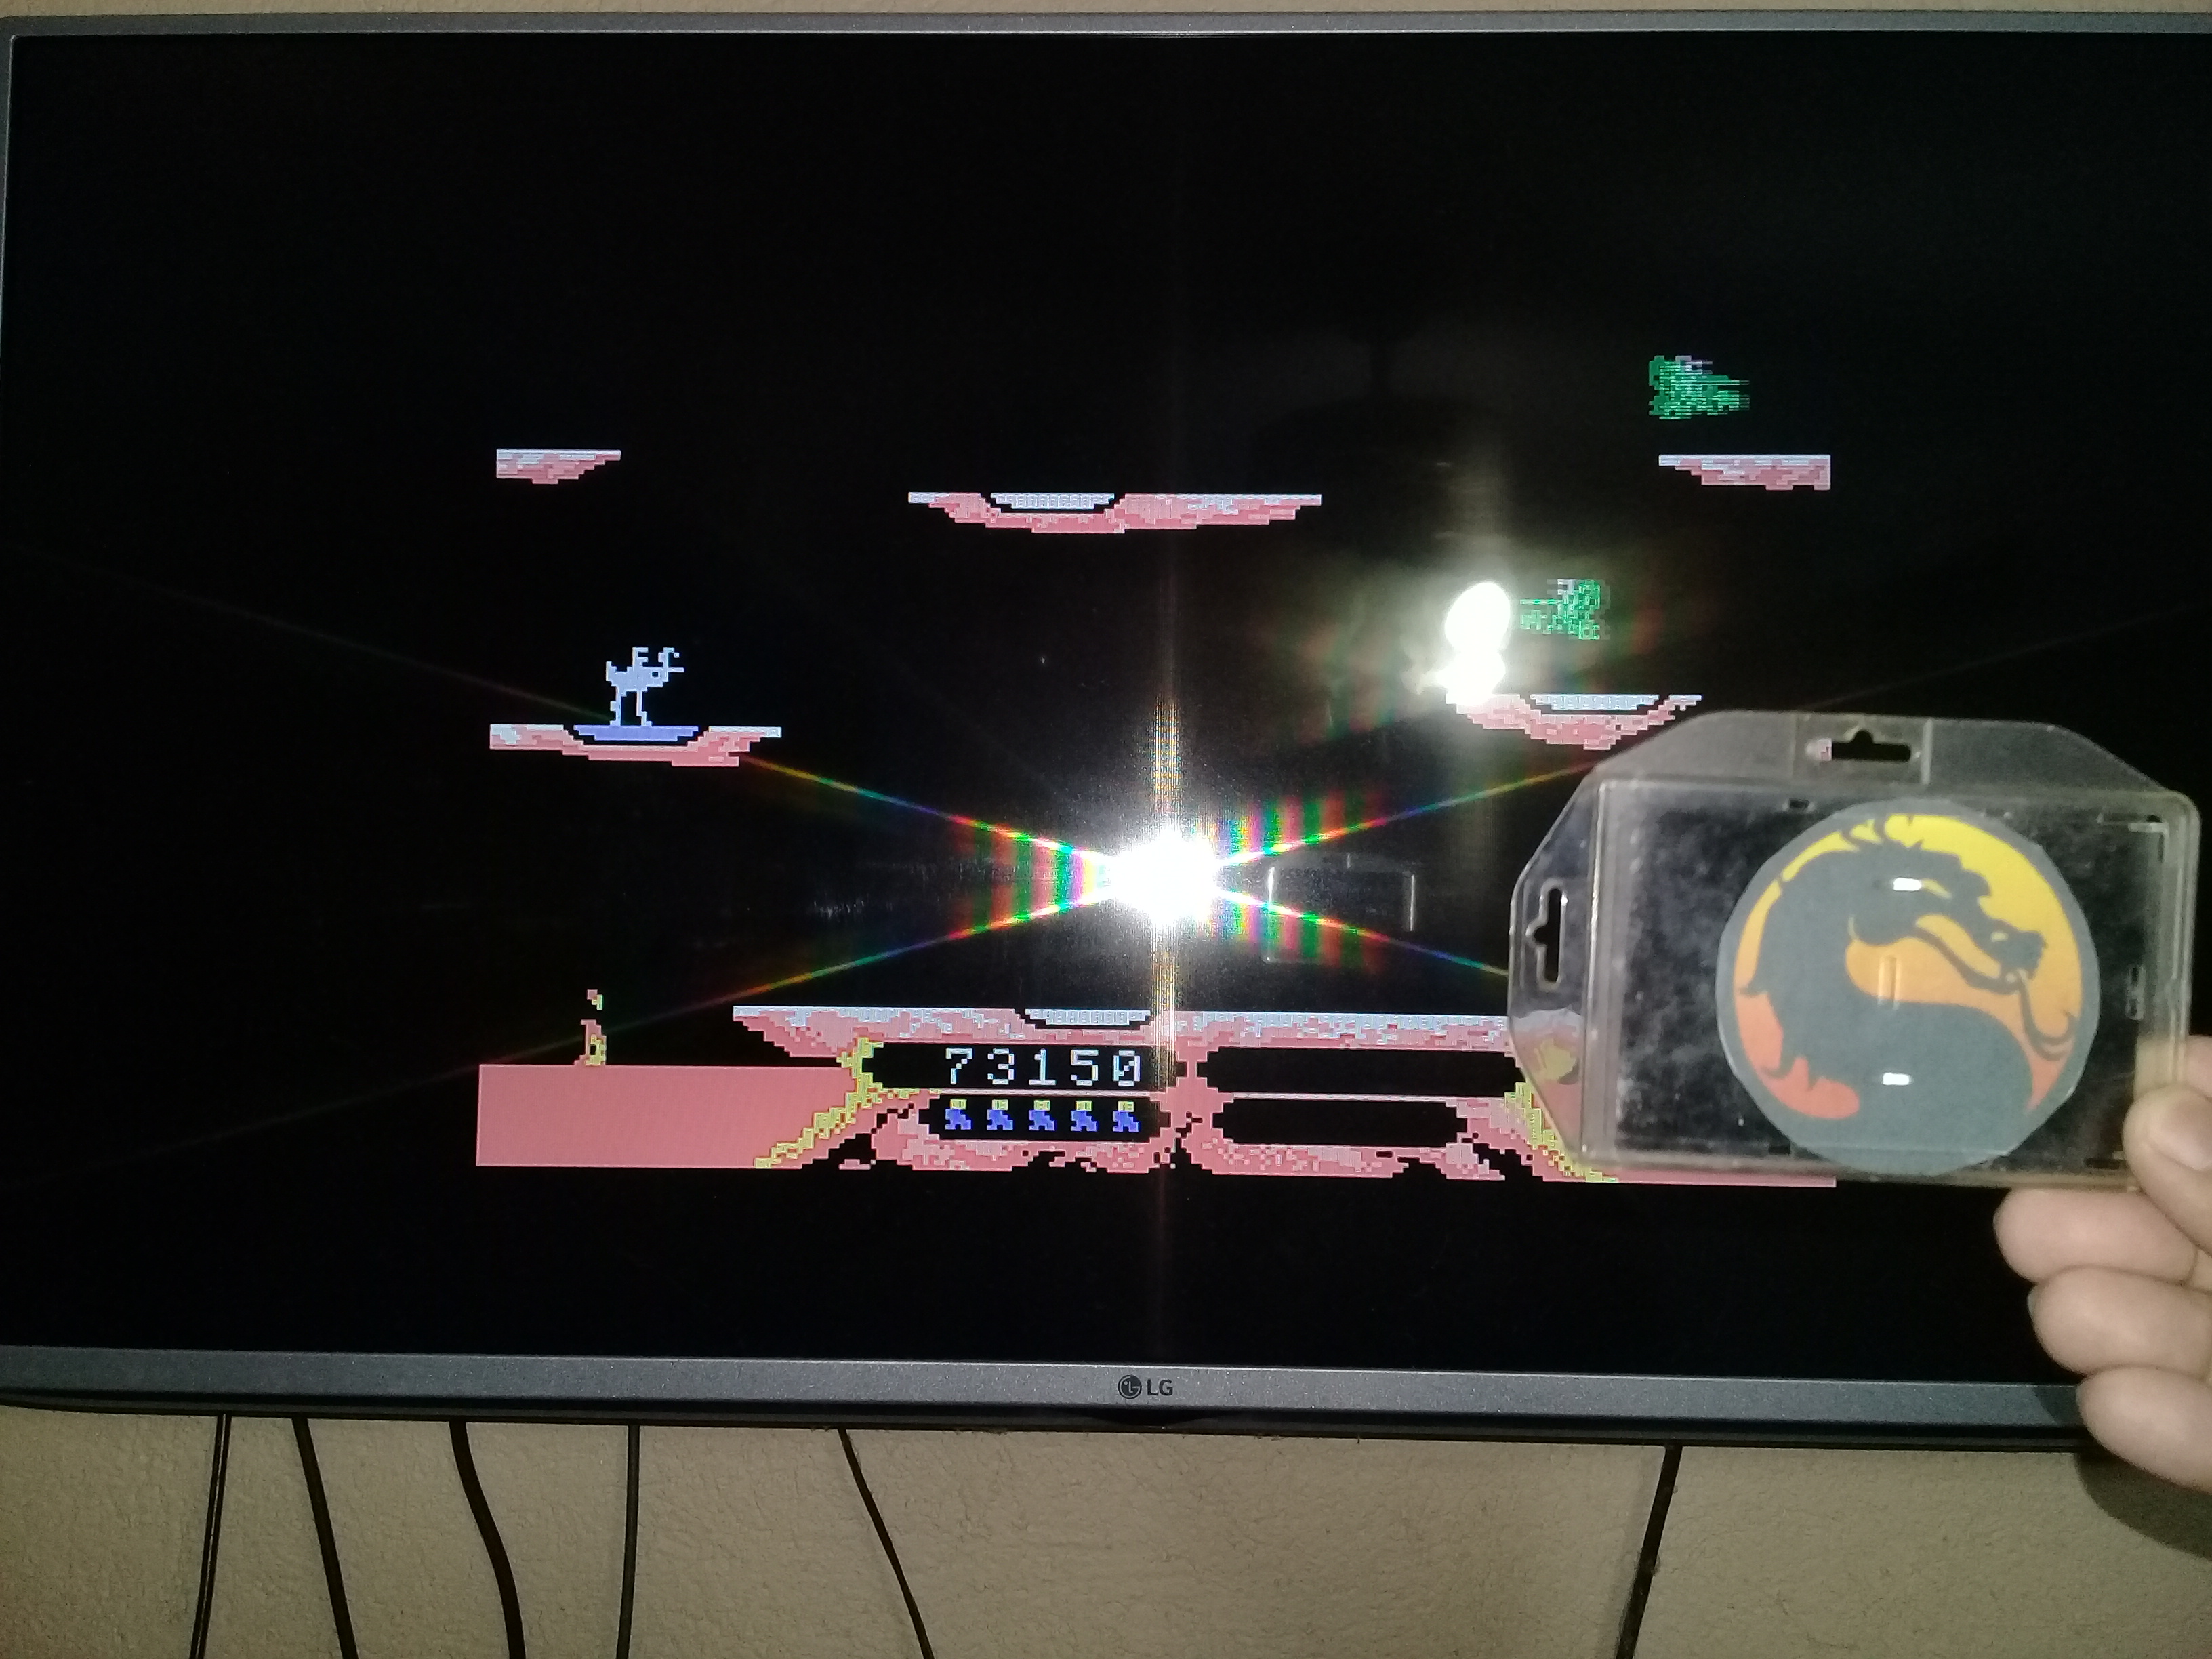 omargeddon: Joust (Colecovision Emulated) 73,150 points on 2020-06-21 09:14:59